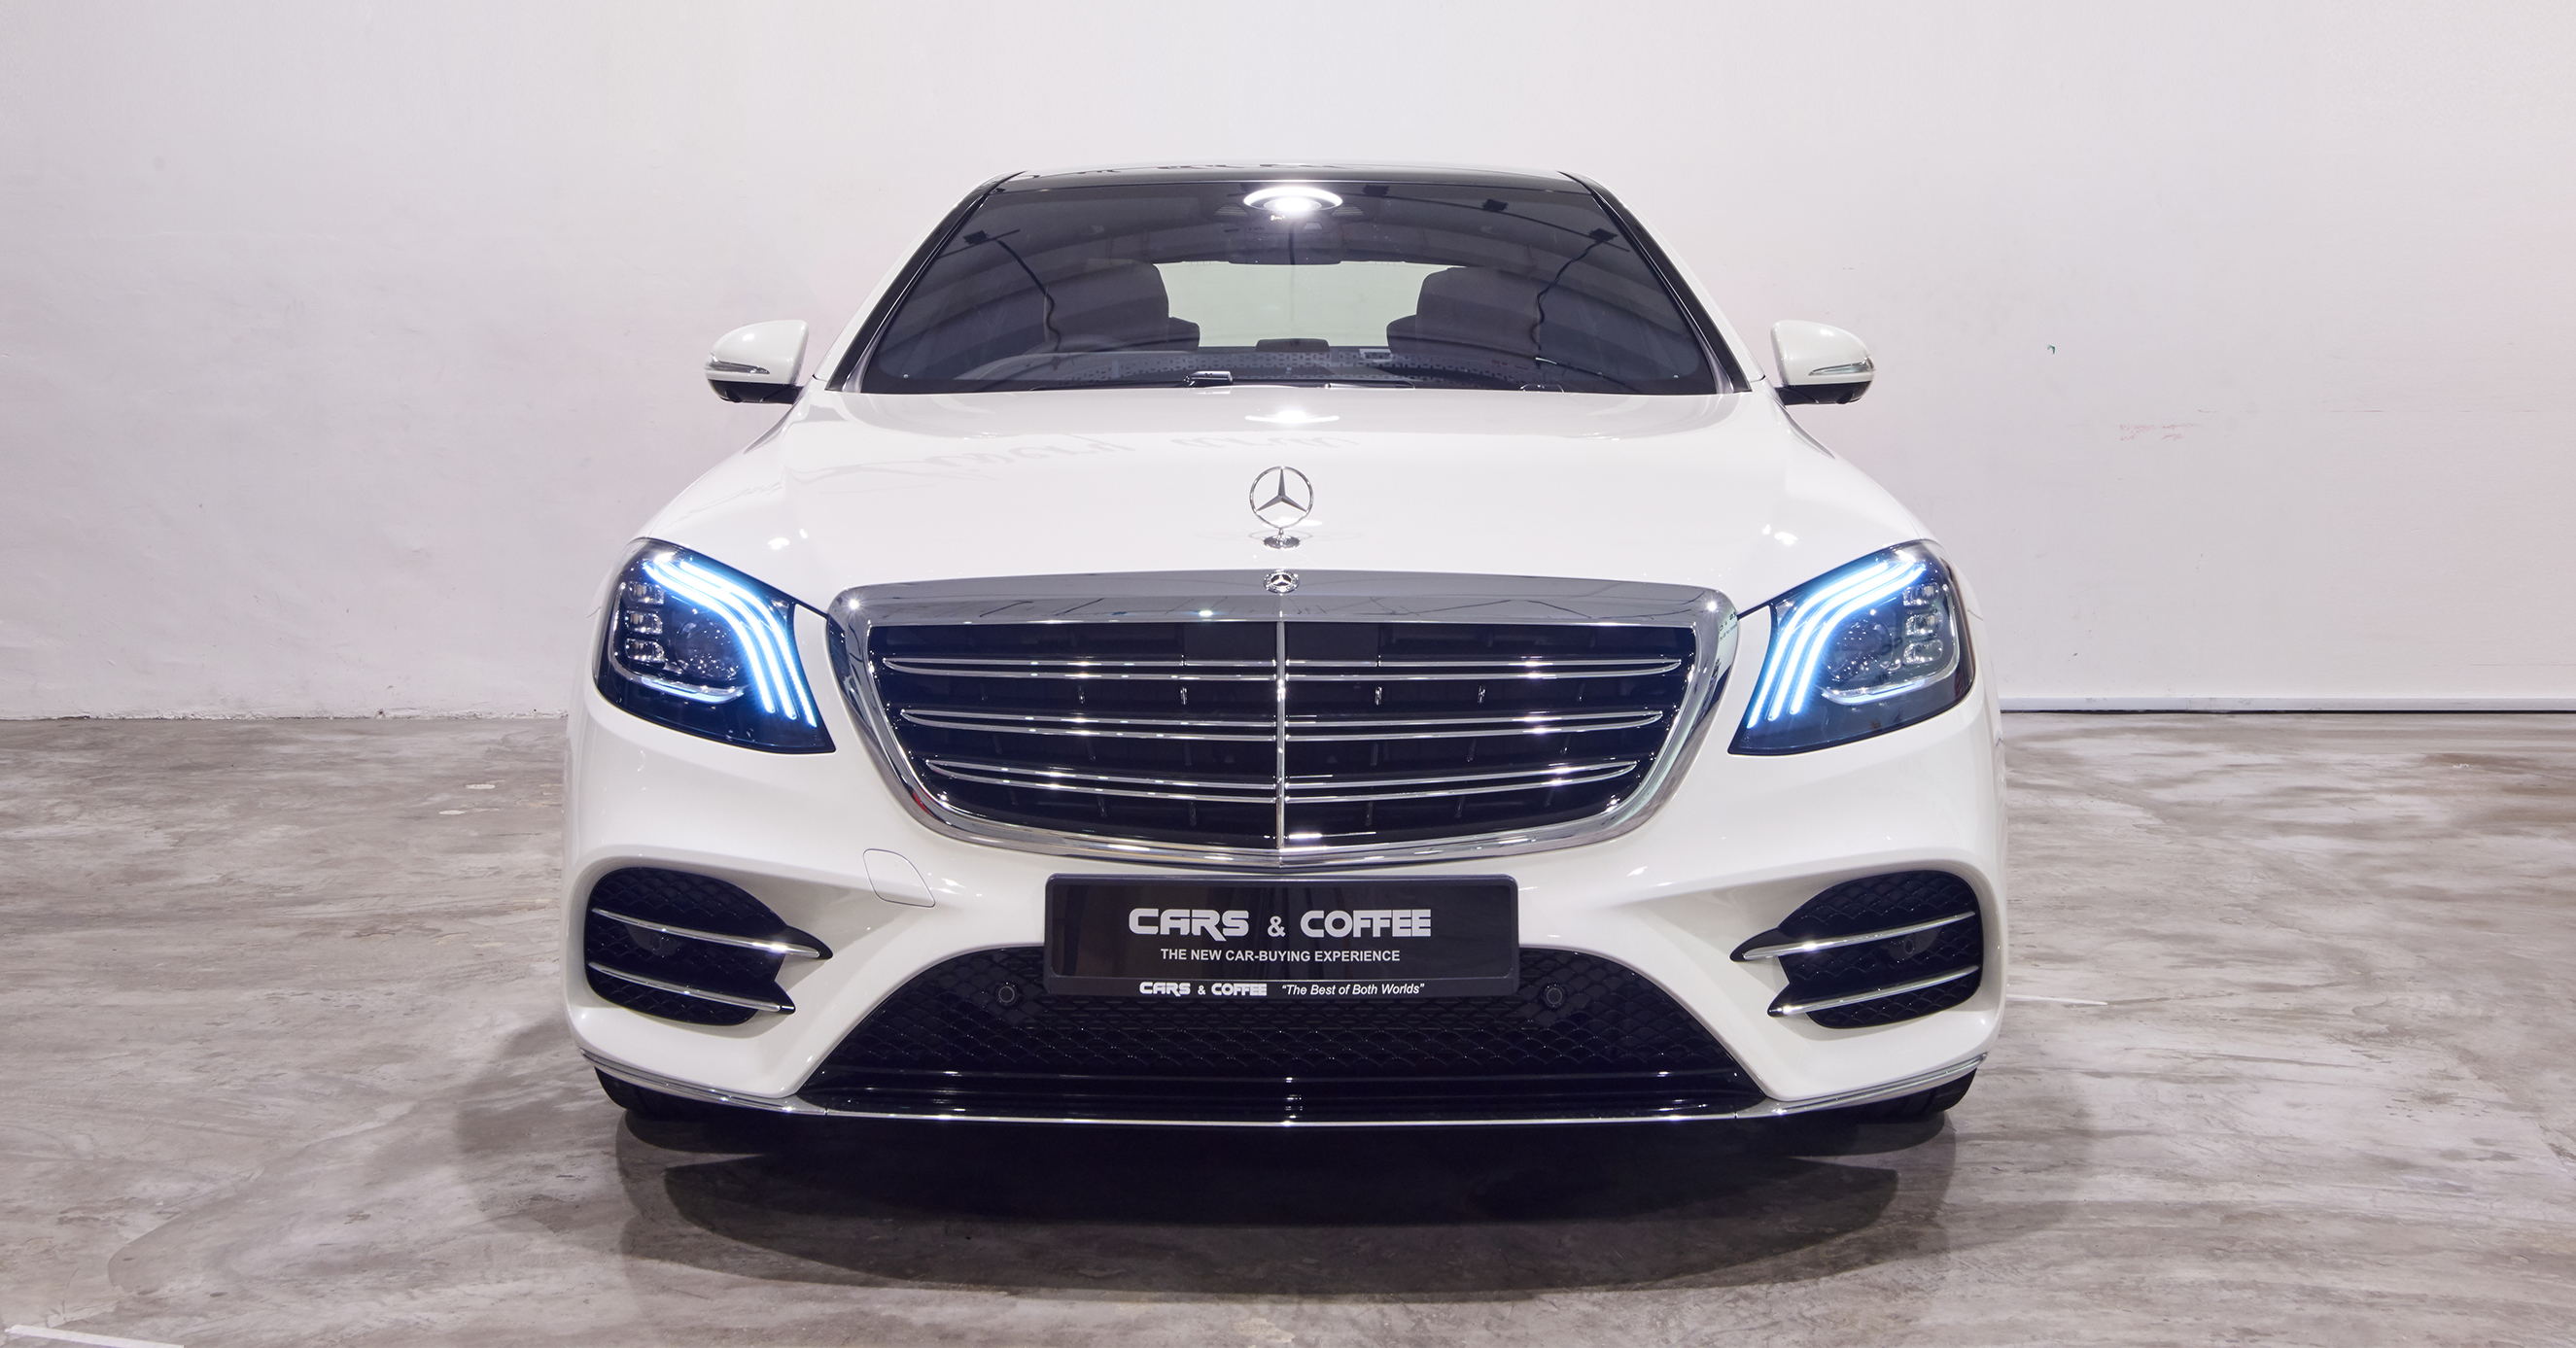 With its ideal proportions and distinctive new details, the redesigned S-Class is at once more majestic and more athletic. From the double chrome bars in its grille and new front apron to its strong rear shoulders, it clearly conveys the power and strength within. Yet its subtleties are just as compelling. Its unusually crisp body creases, impossibly tight tolerances, and intriguing LED illumination make it the embodiment of confident elegance and the advancement of a rich tradition.